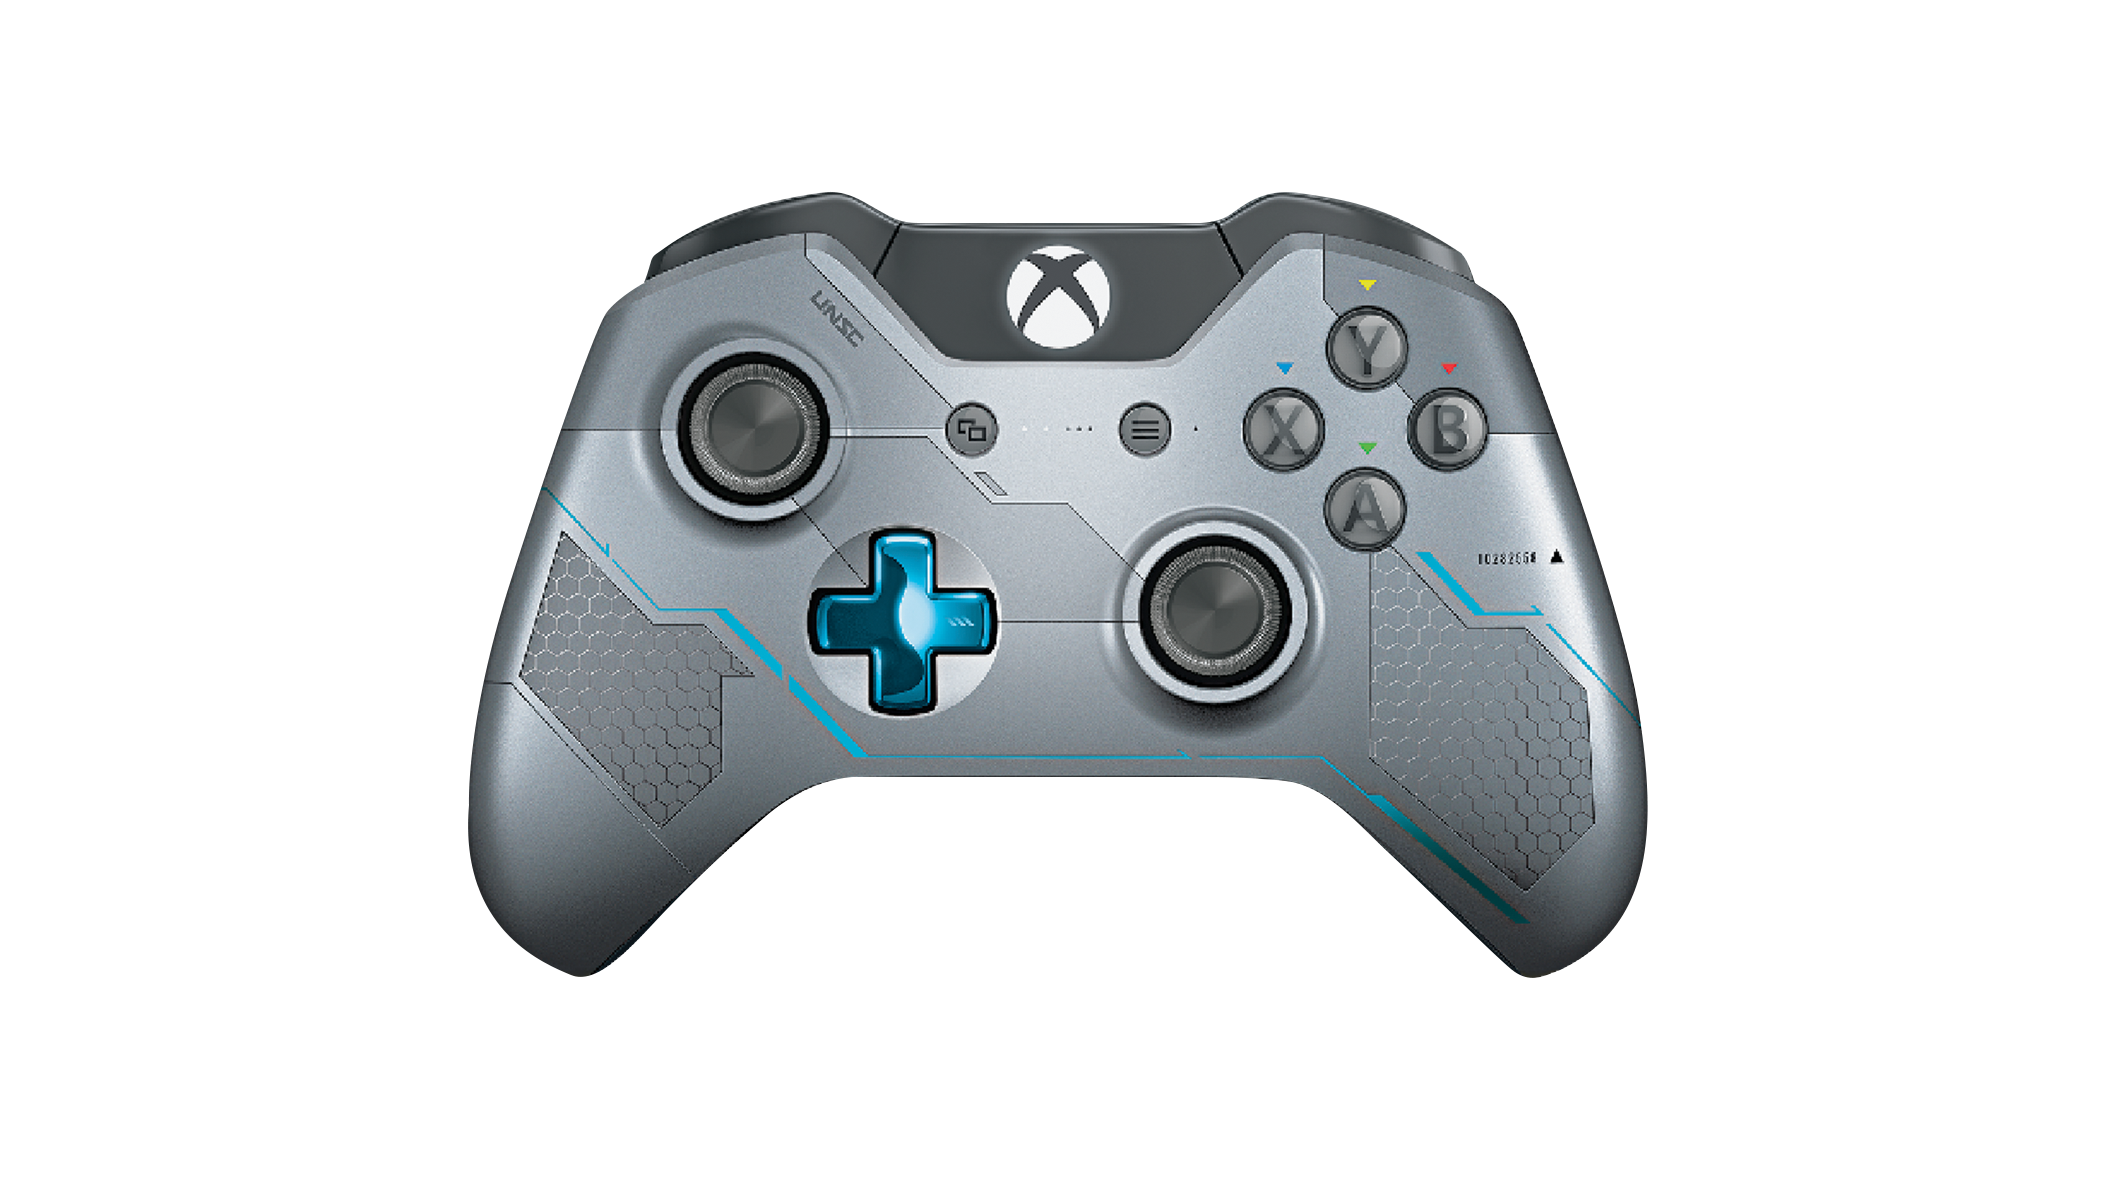 A special edition xbox one controller